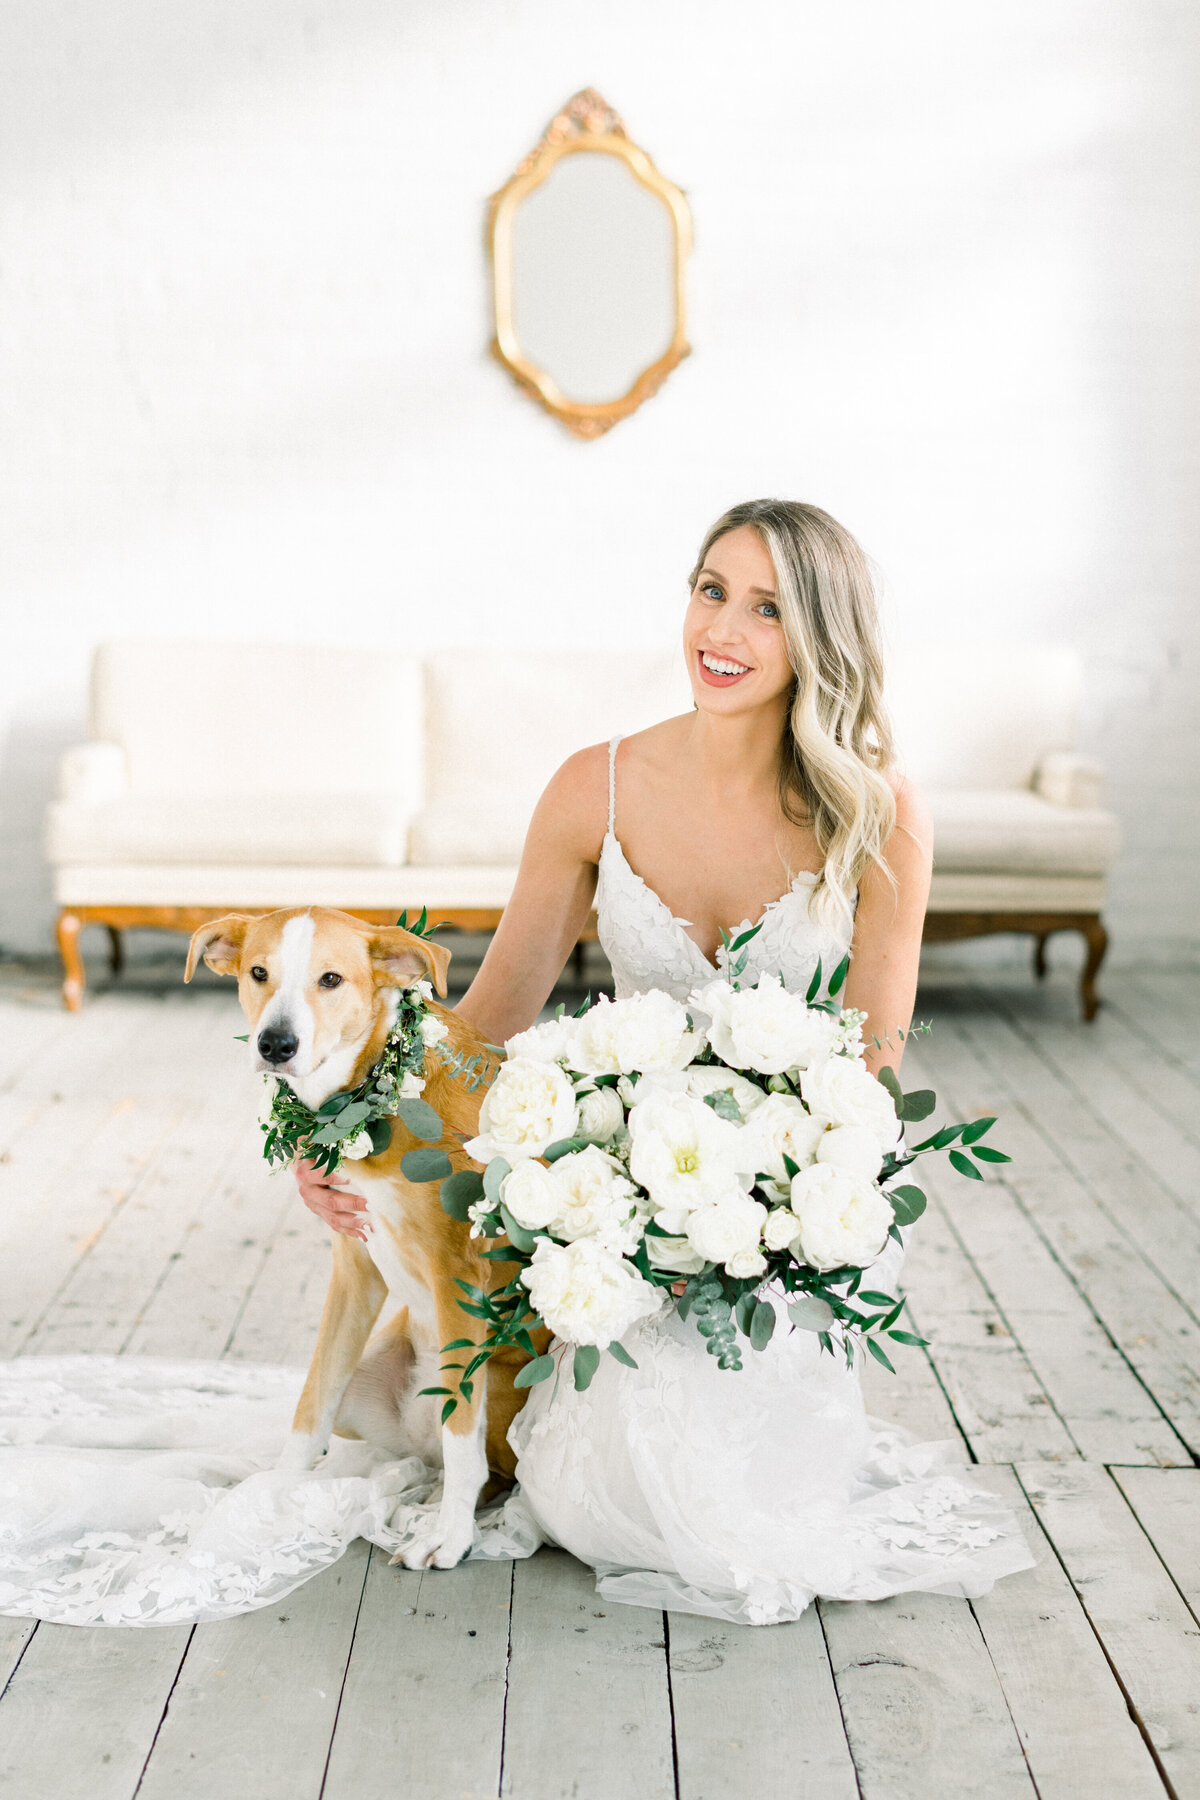 Blacksmith Main Photographer, Blacksmith Main Wedding photos, Brainerd wedding photographer, Minnesota wedding photographer, Minneapolis wedding photographer, MN fine art photographer, Luminary MN wedding Photos